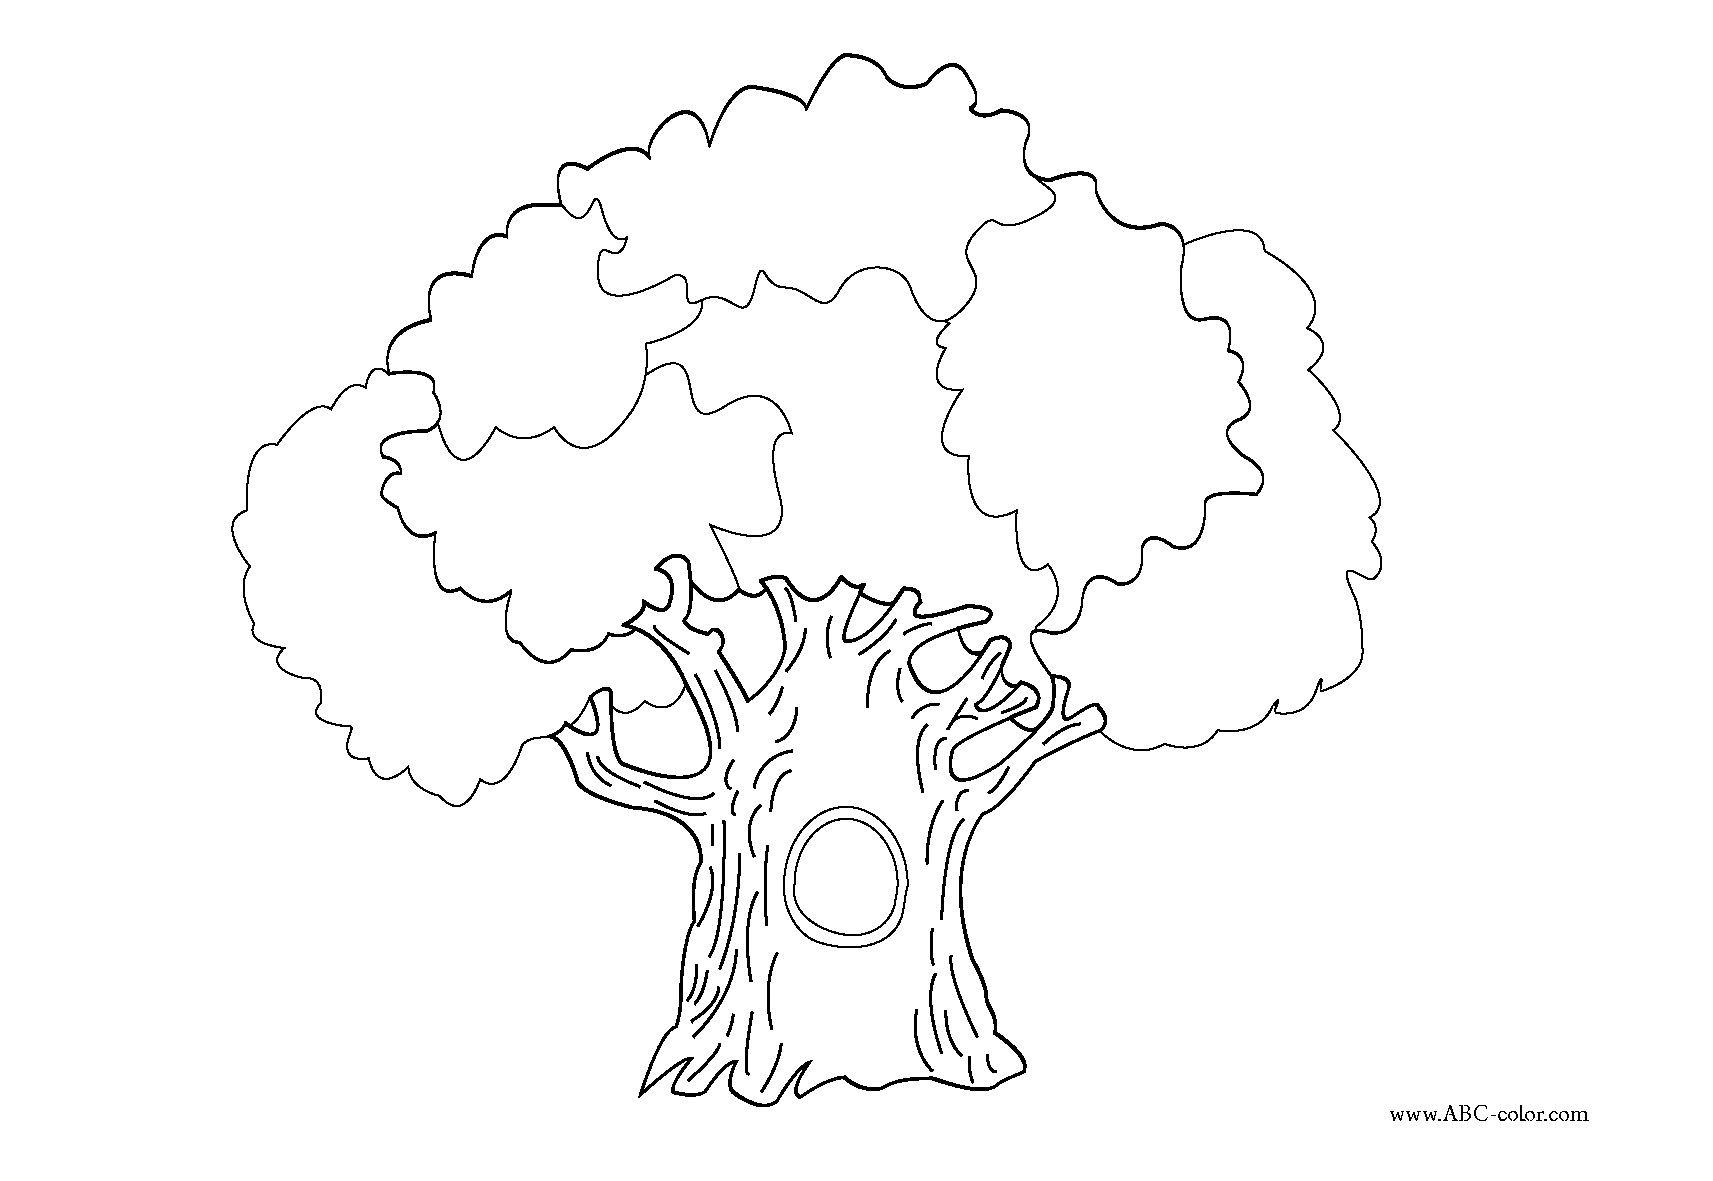 evergreen tree coloring pages - photo#28